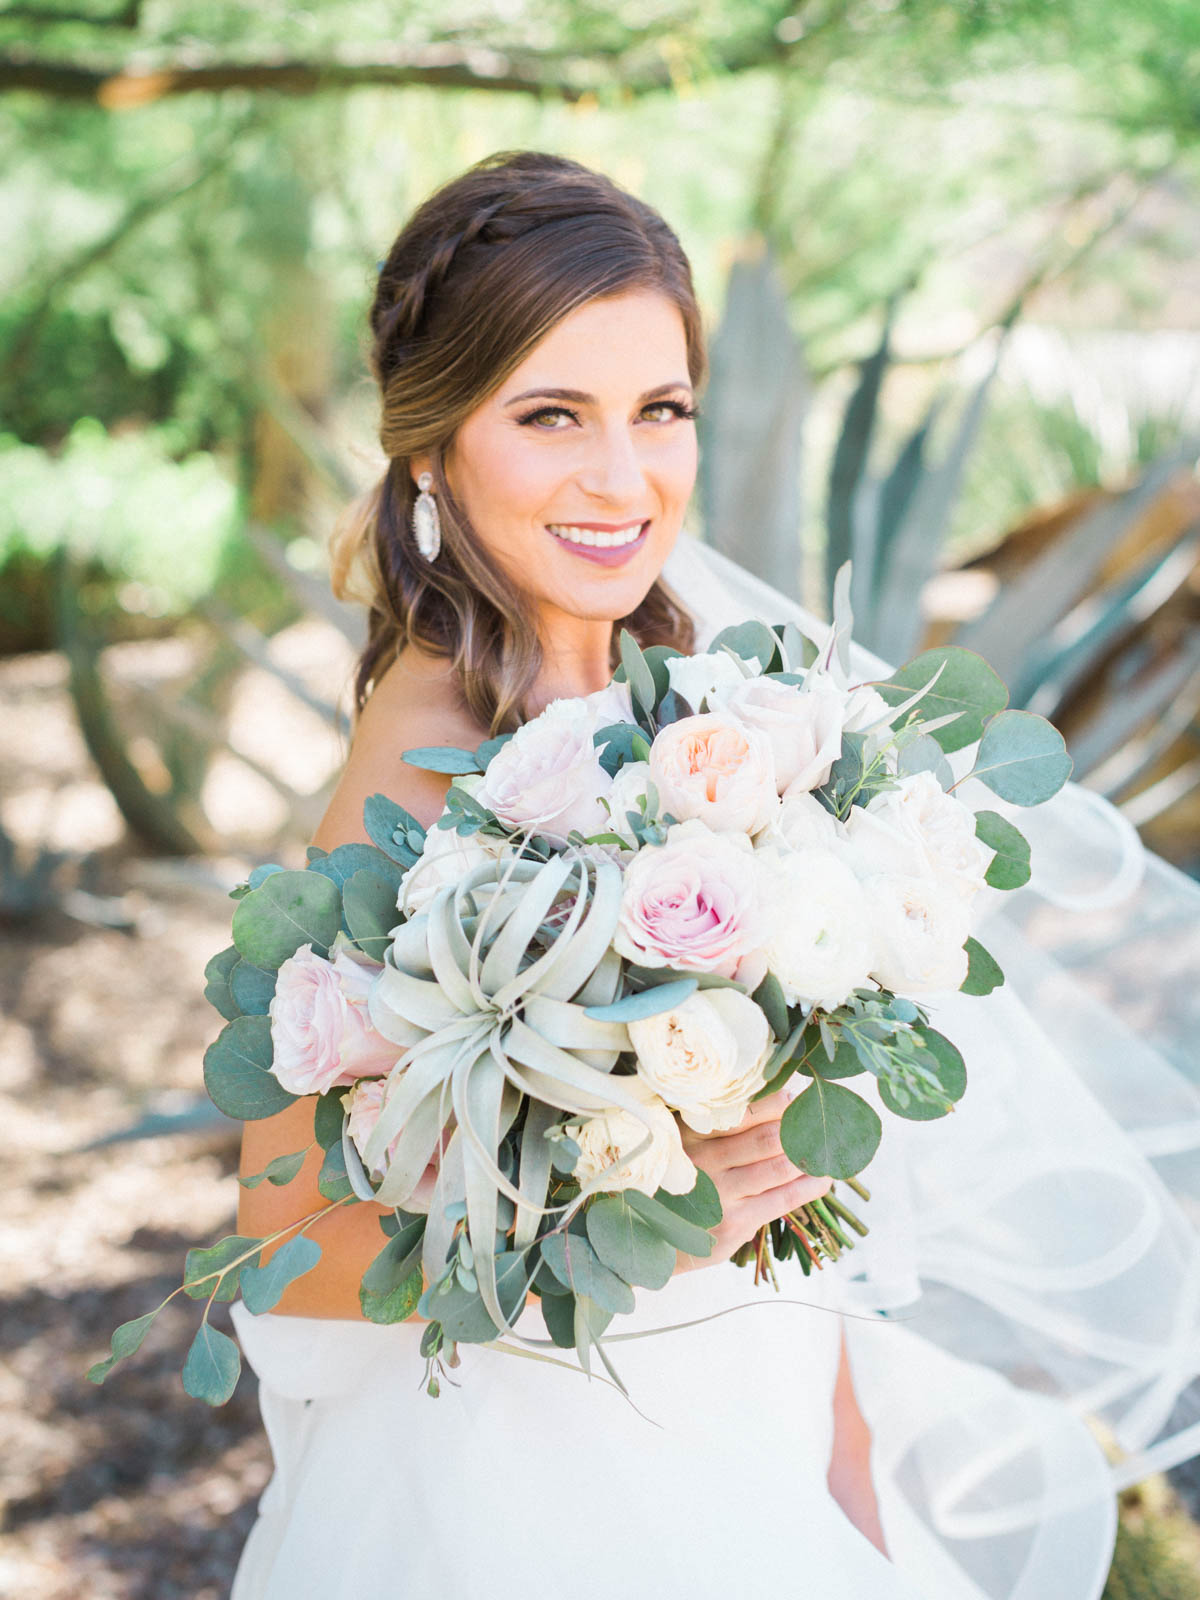 Gorgeous florals with bouquet by Alexis Grace Florals. Ccaptured by Tucson Wedding Photographers Betsy & John